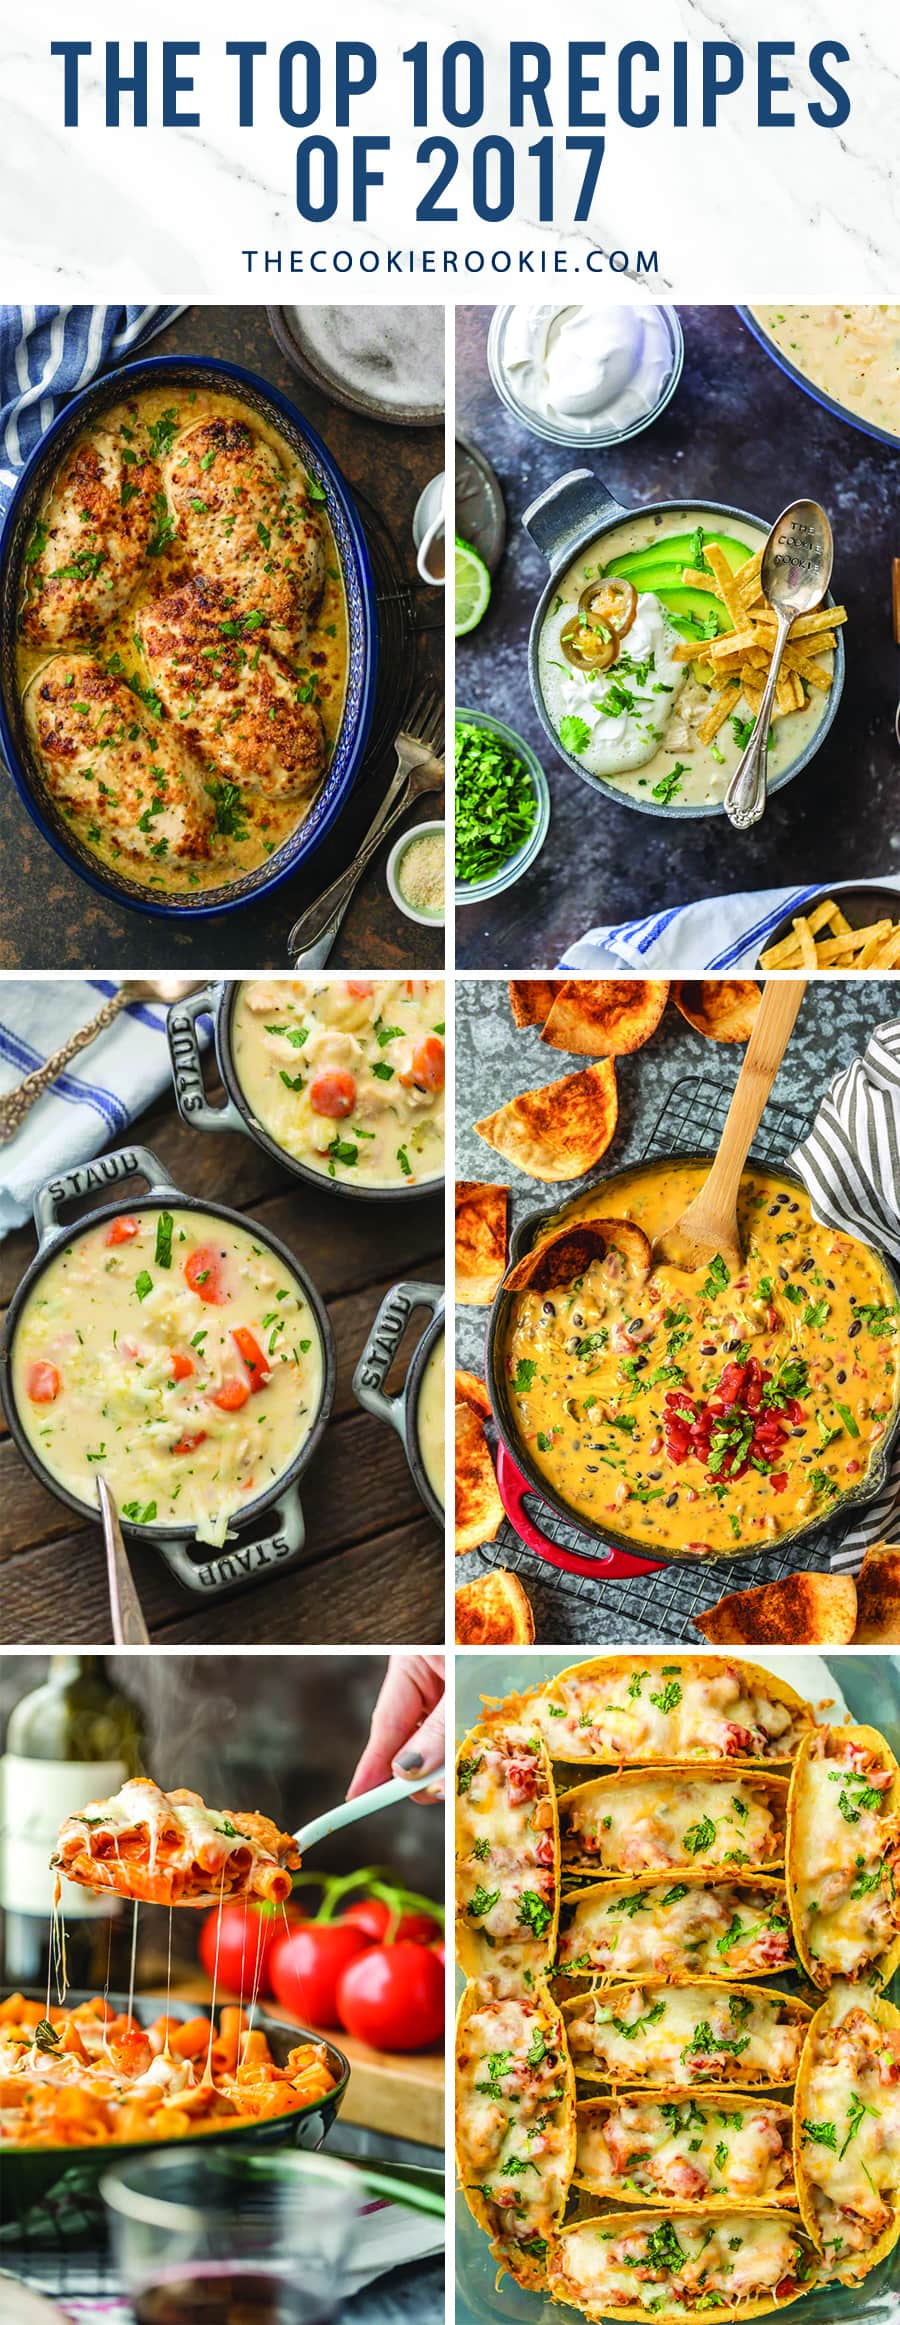 10 popular recipes from 2017 collage image